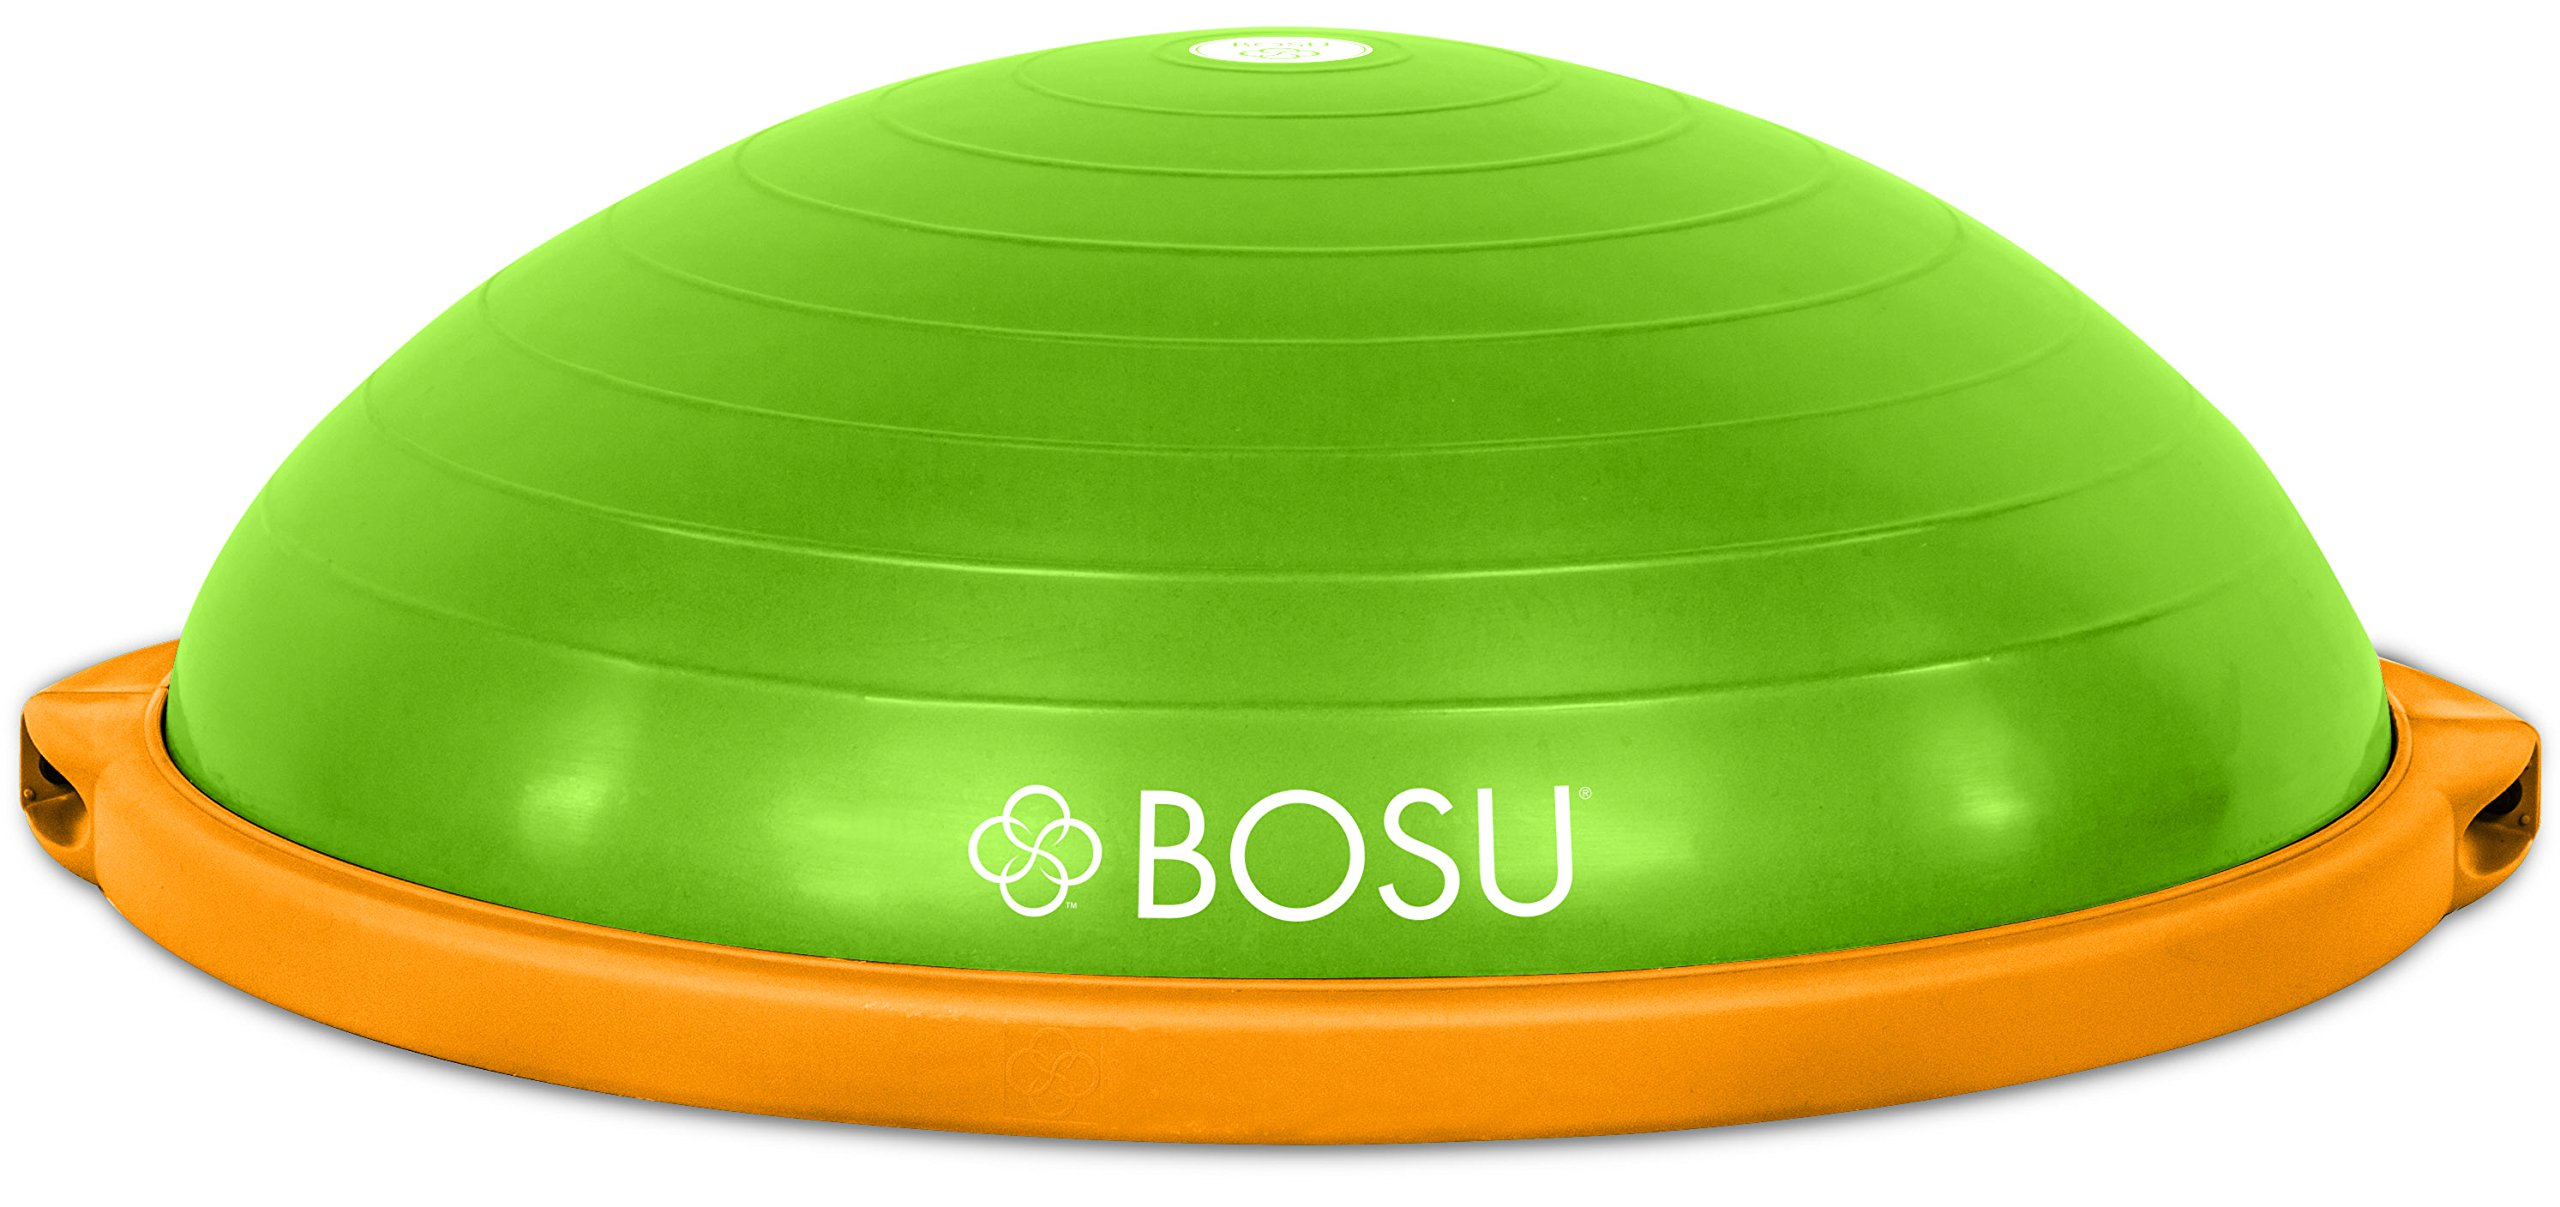 Bosu Balance Trainer, 65cm The Original - Lime Green/Orange